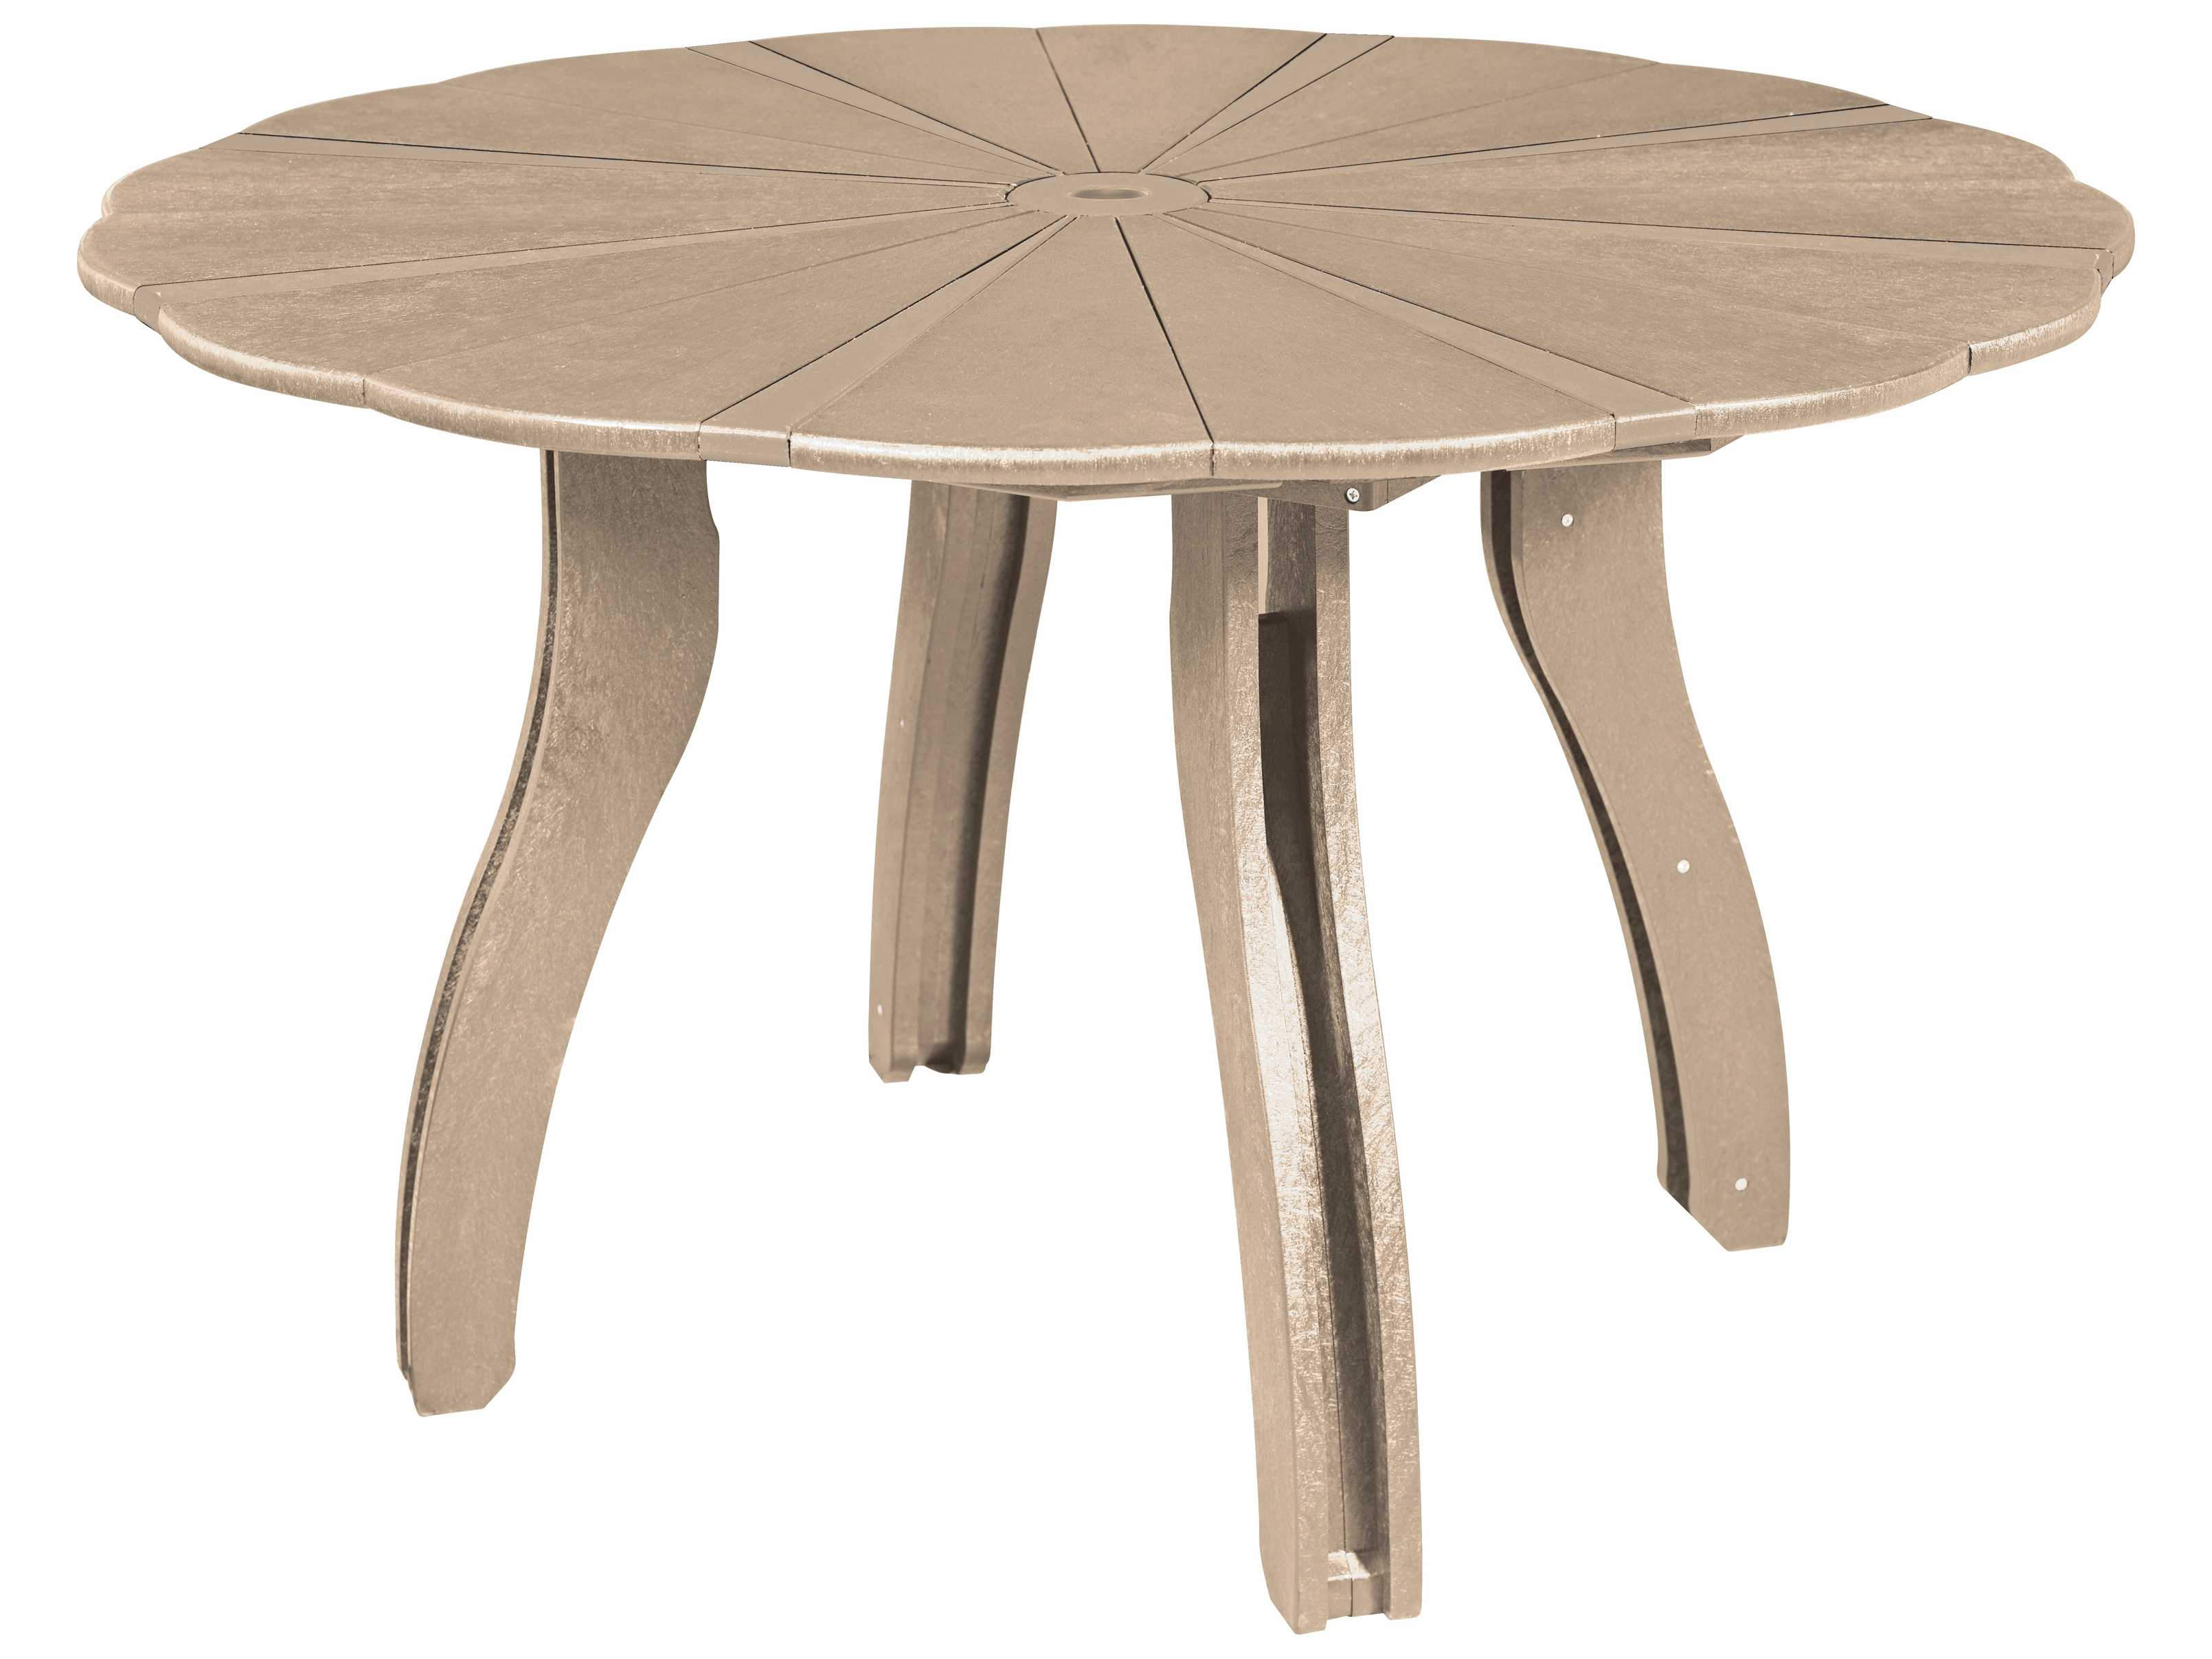 C R Plastic Generation 52 Scalloped Round Dining Table T12